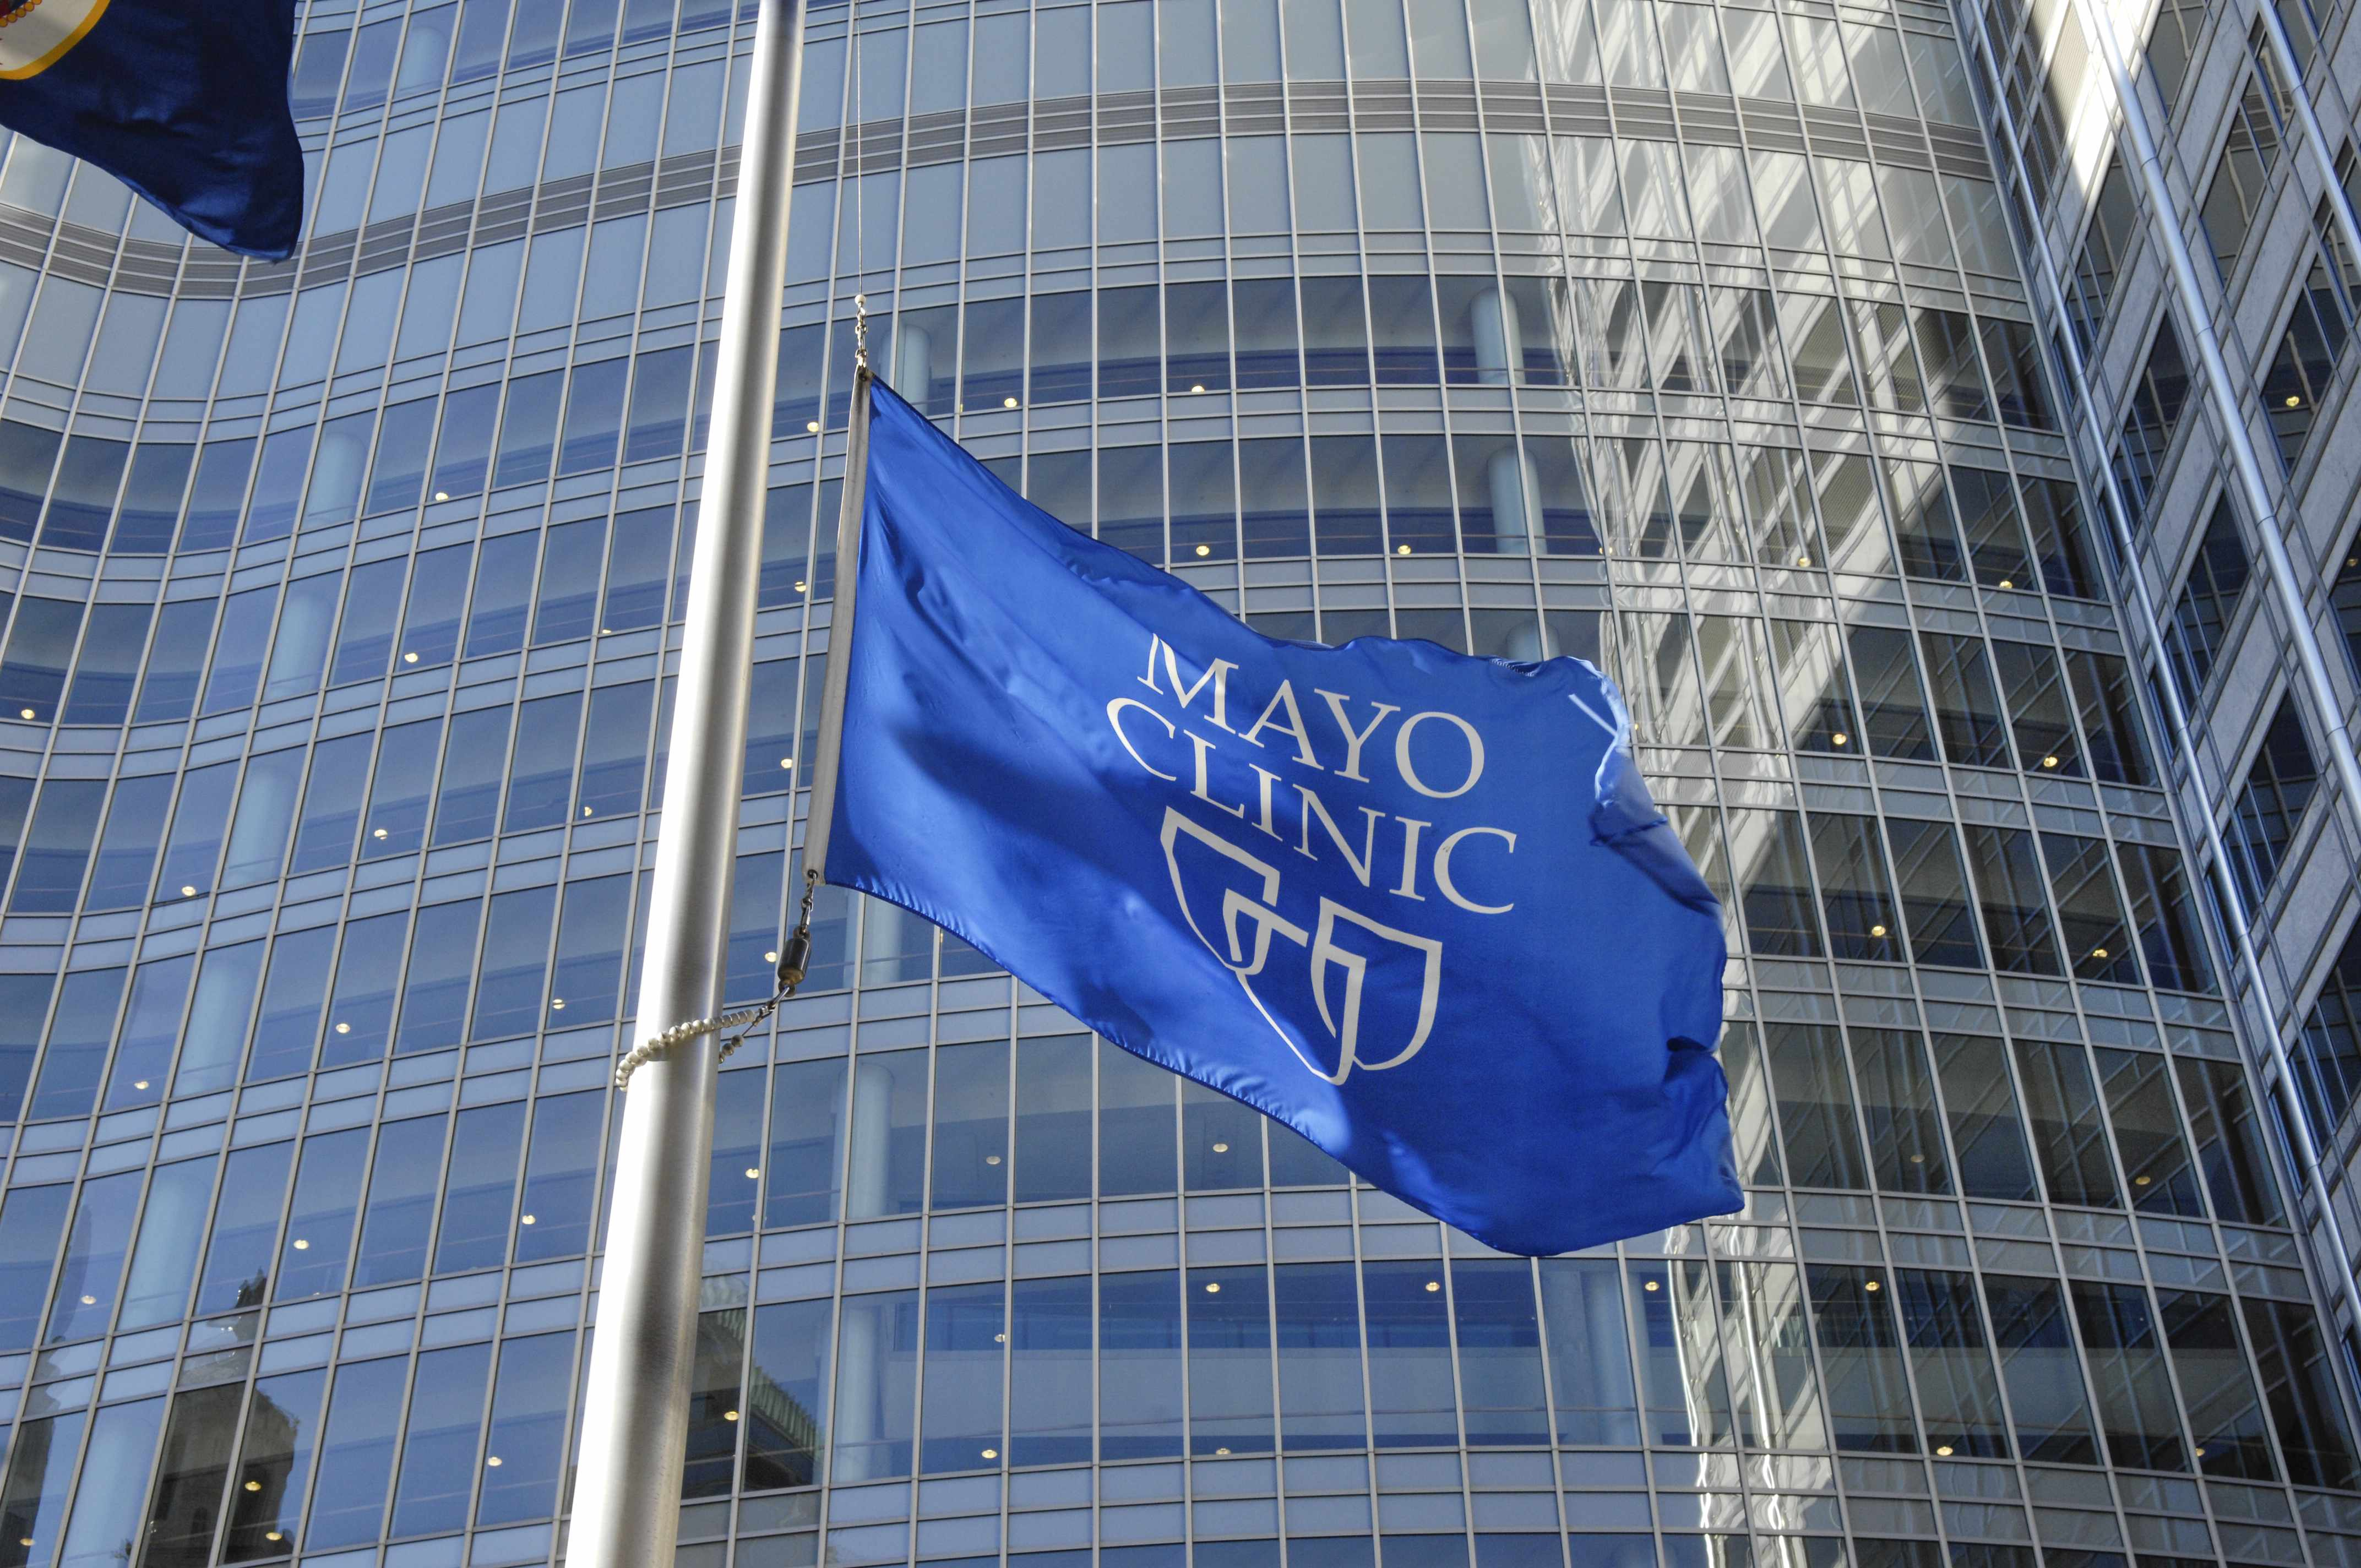 Gonda Building with Mayo Clinic flag in front of windows